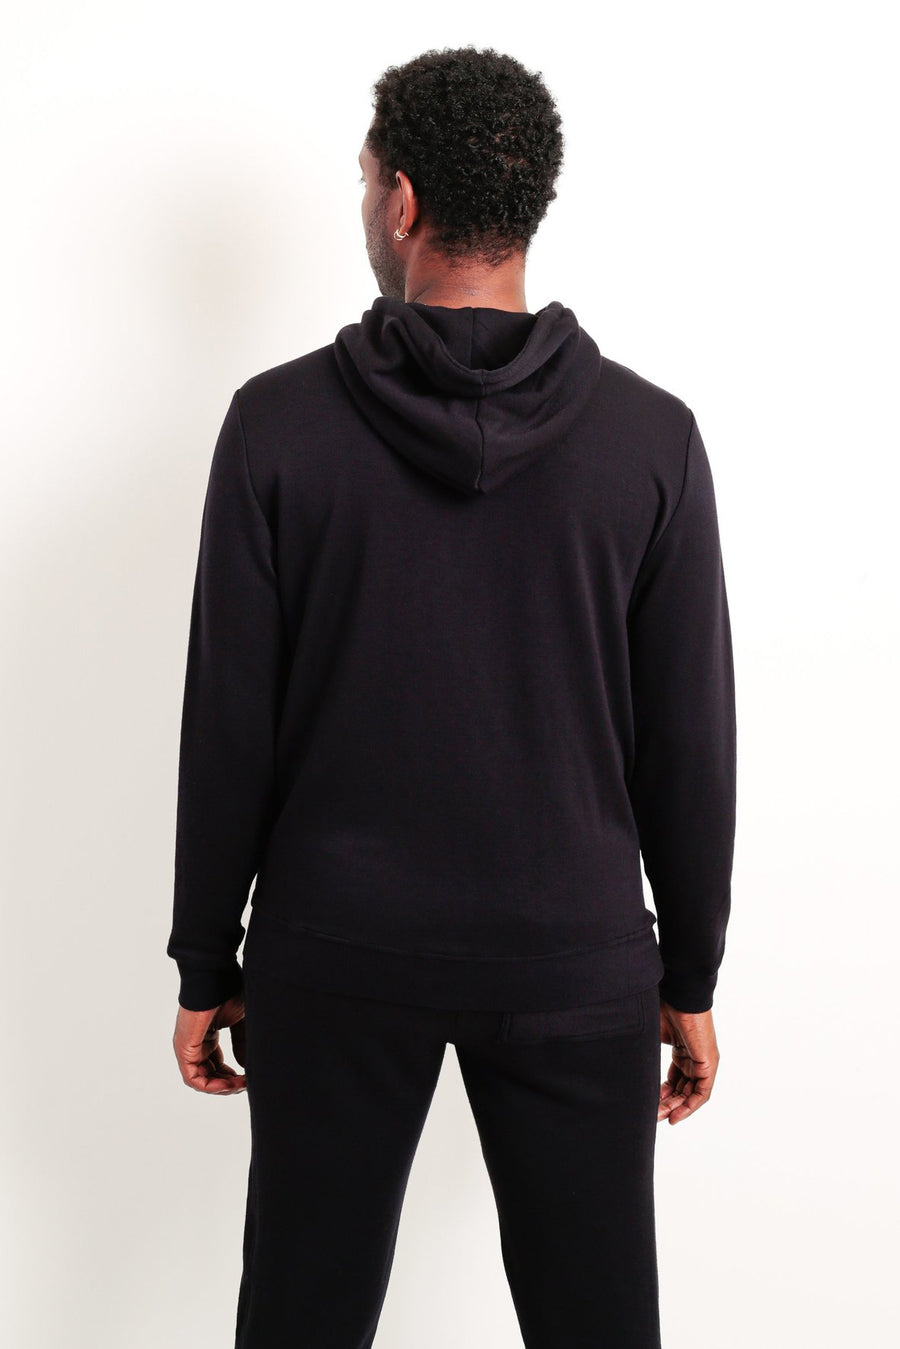 Panel Zip Up Hoodie - Black - Pavilion